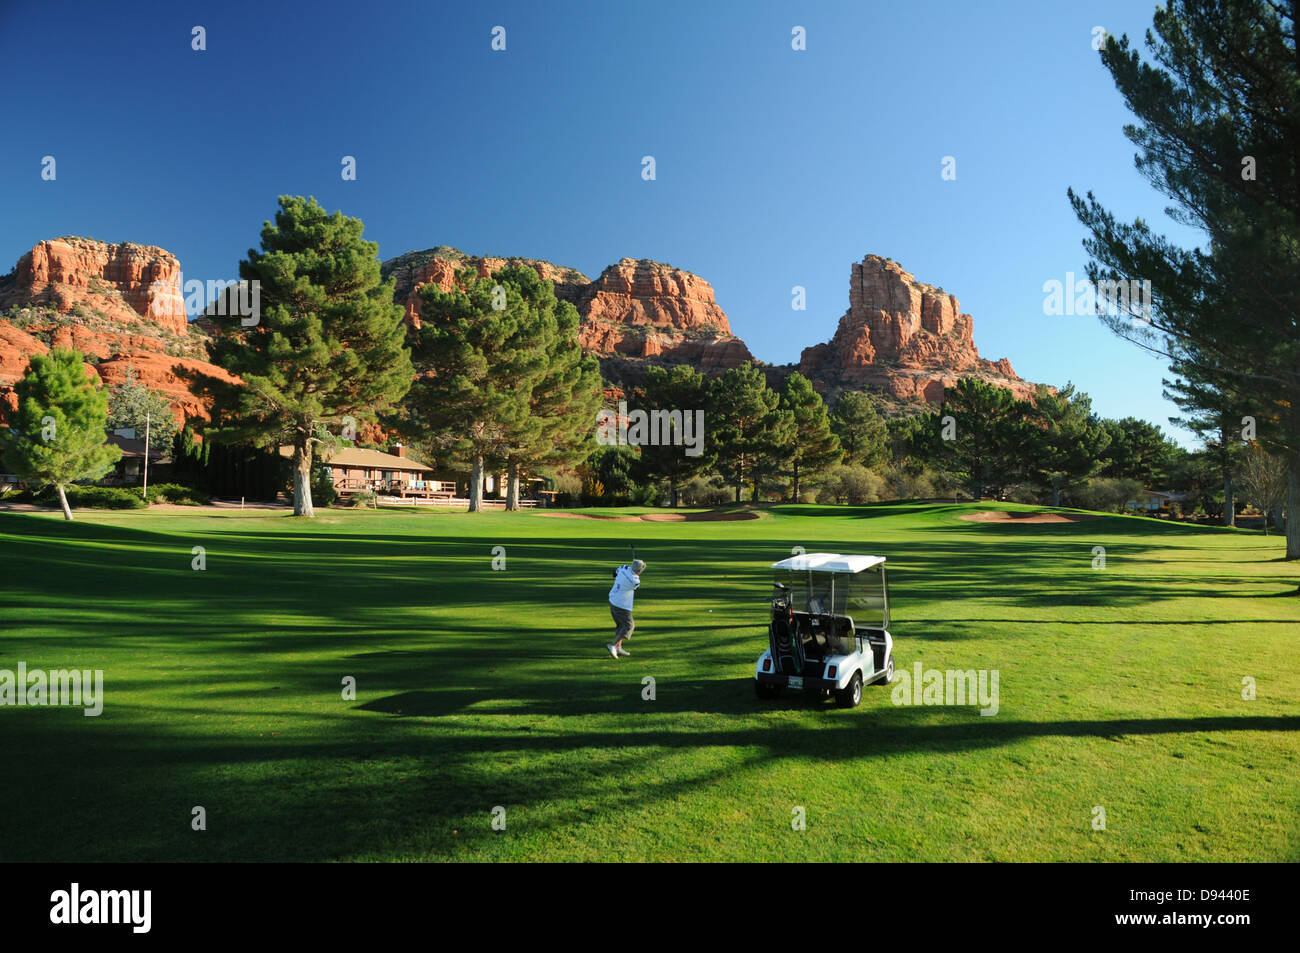 Oakcreek Country Club golf in Sedona in Arizona, circondato da red formazioni rocciose Immagini Stock